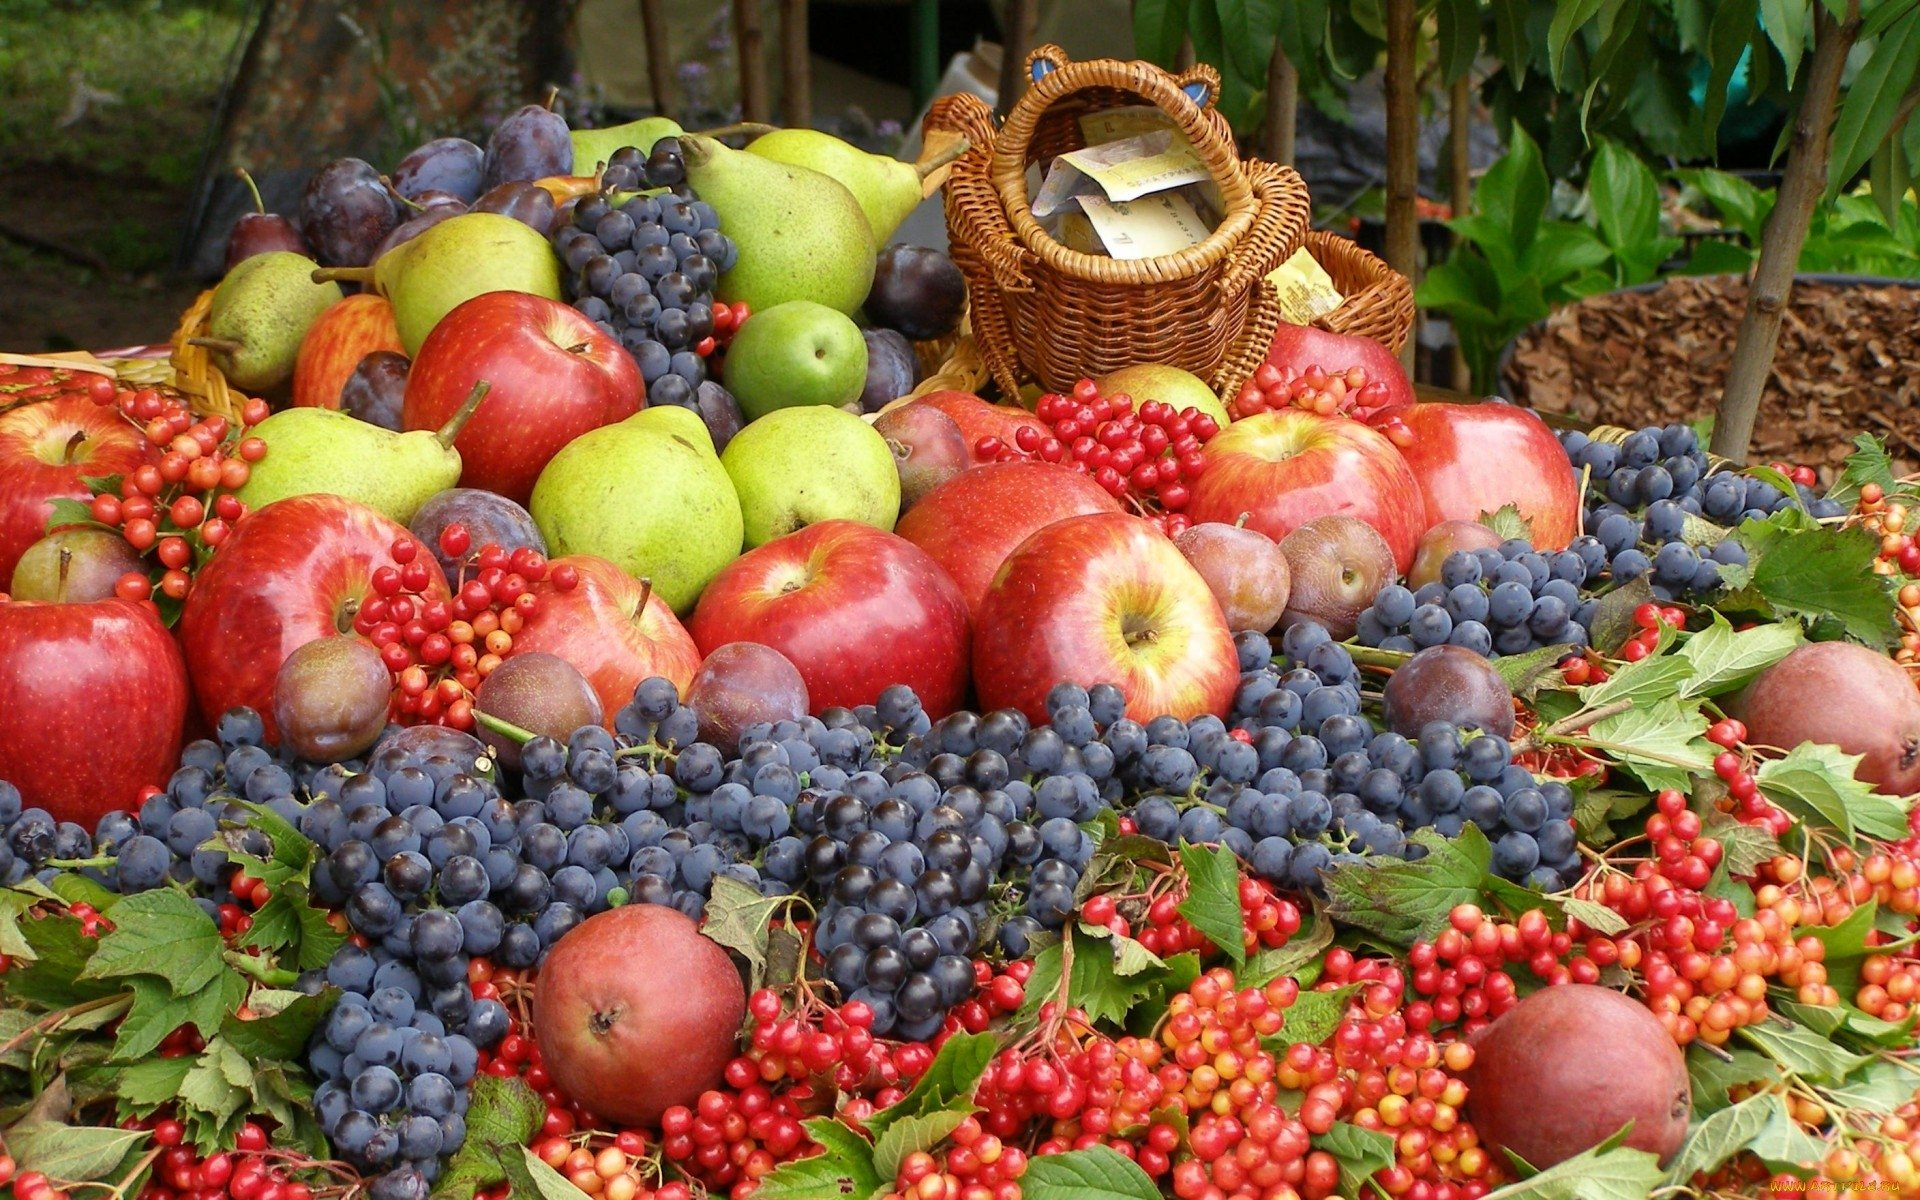 Fruits hd images - Hd Wallpaper Background Id 326822